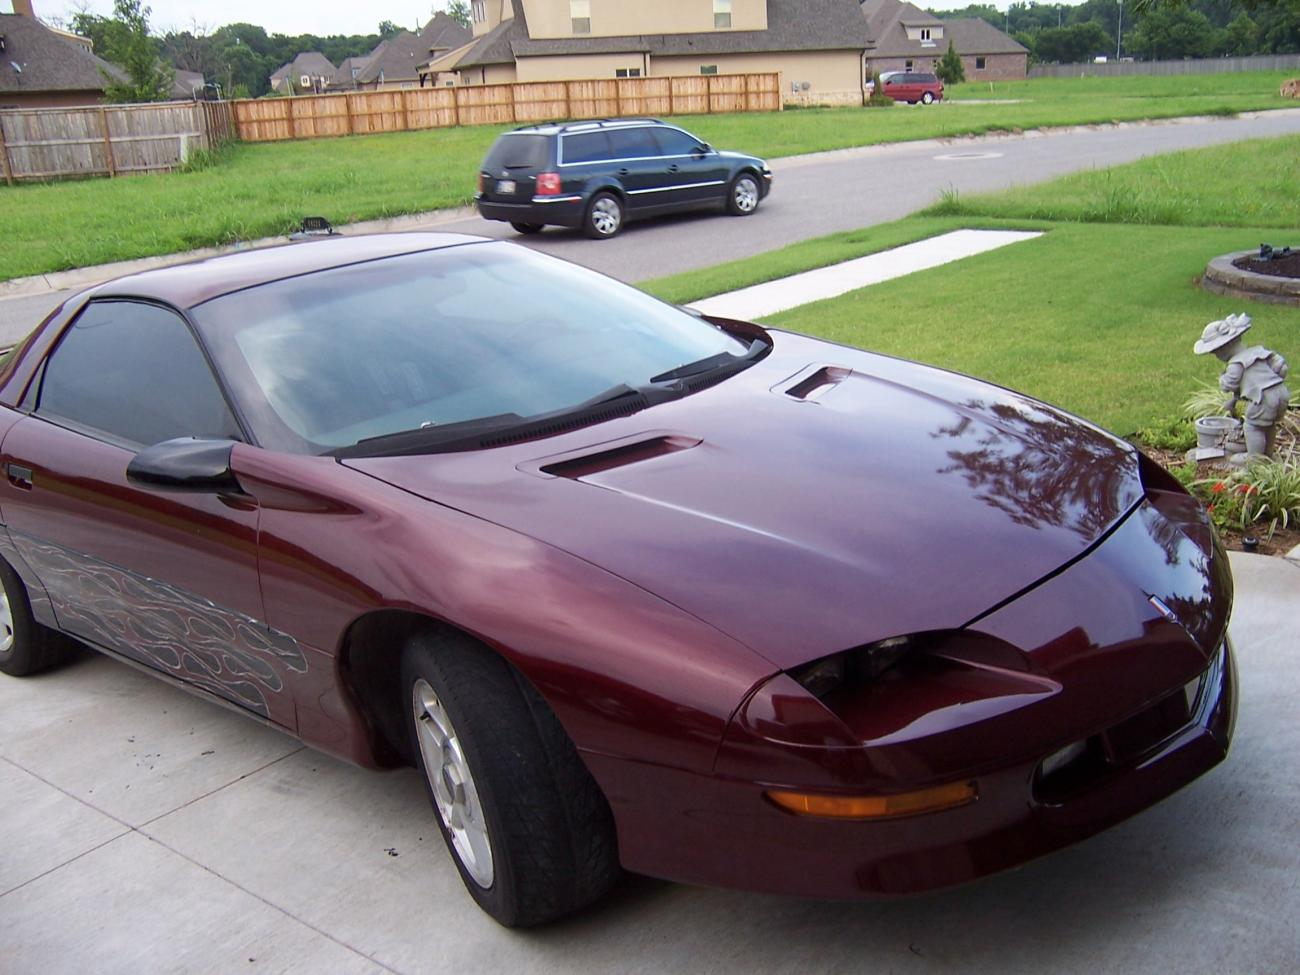 1995 camaro for sale camaro5 chevy camaro forum camaro. Black Bedroom Furniture Sets. Home Design Ideas